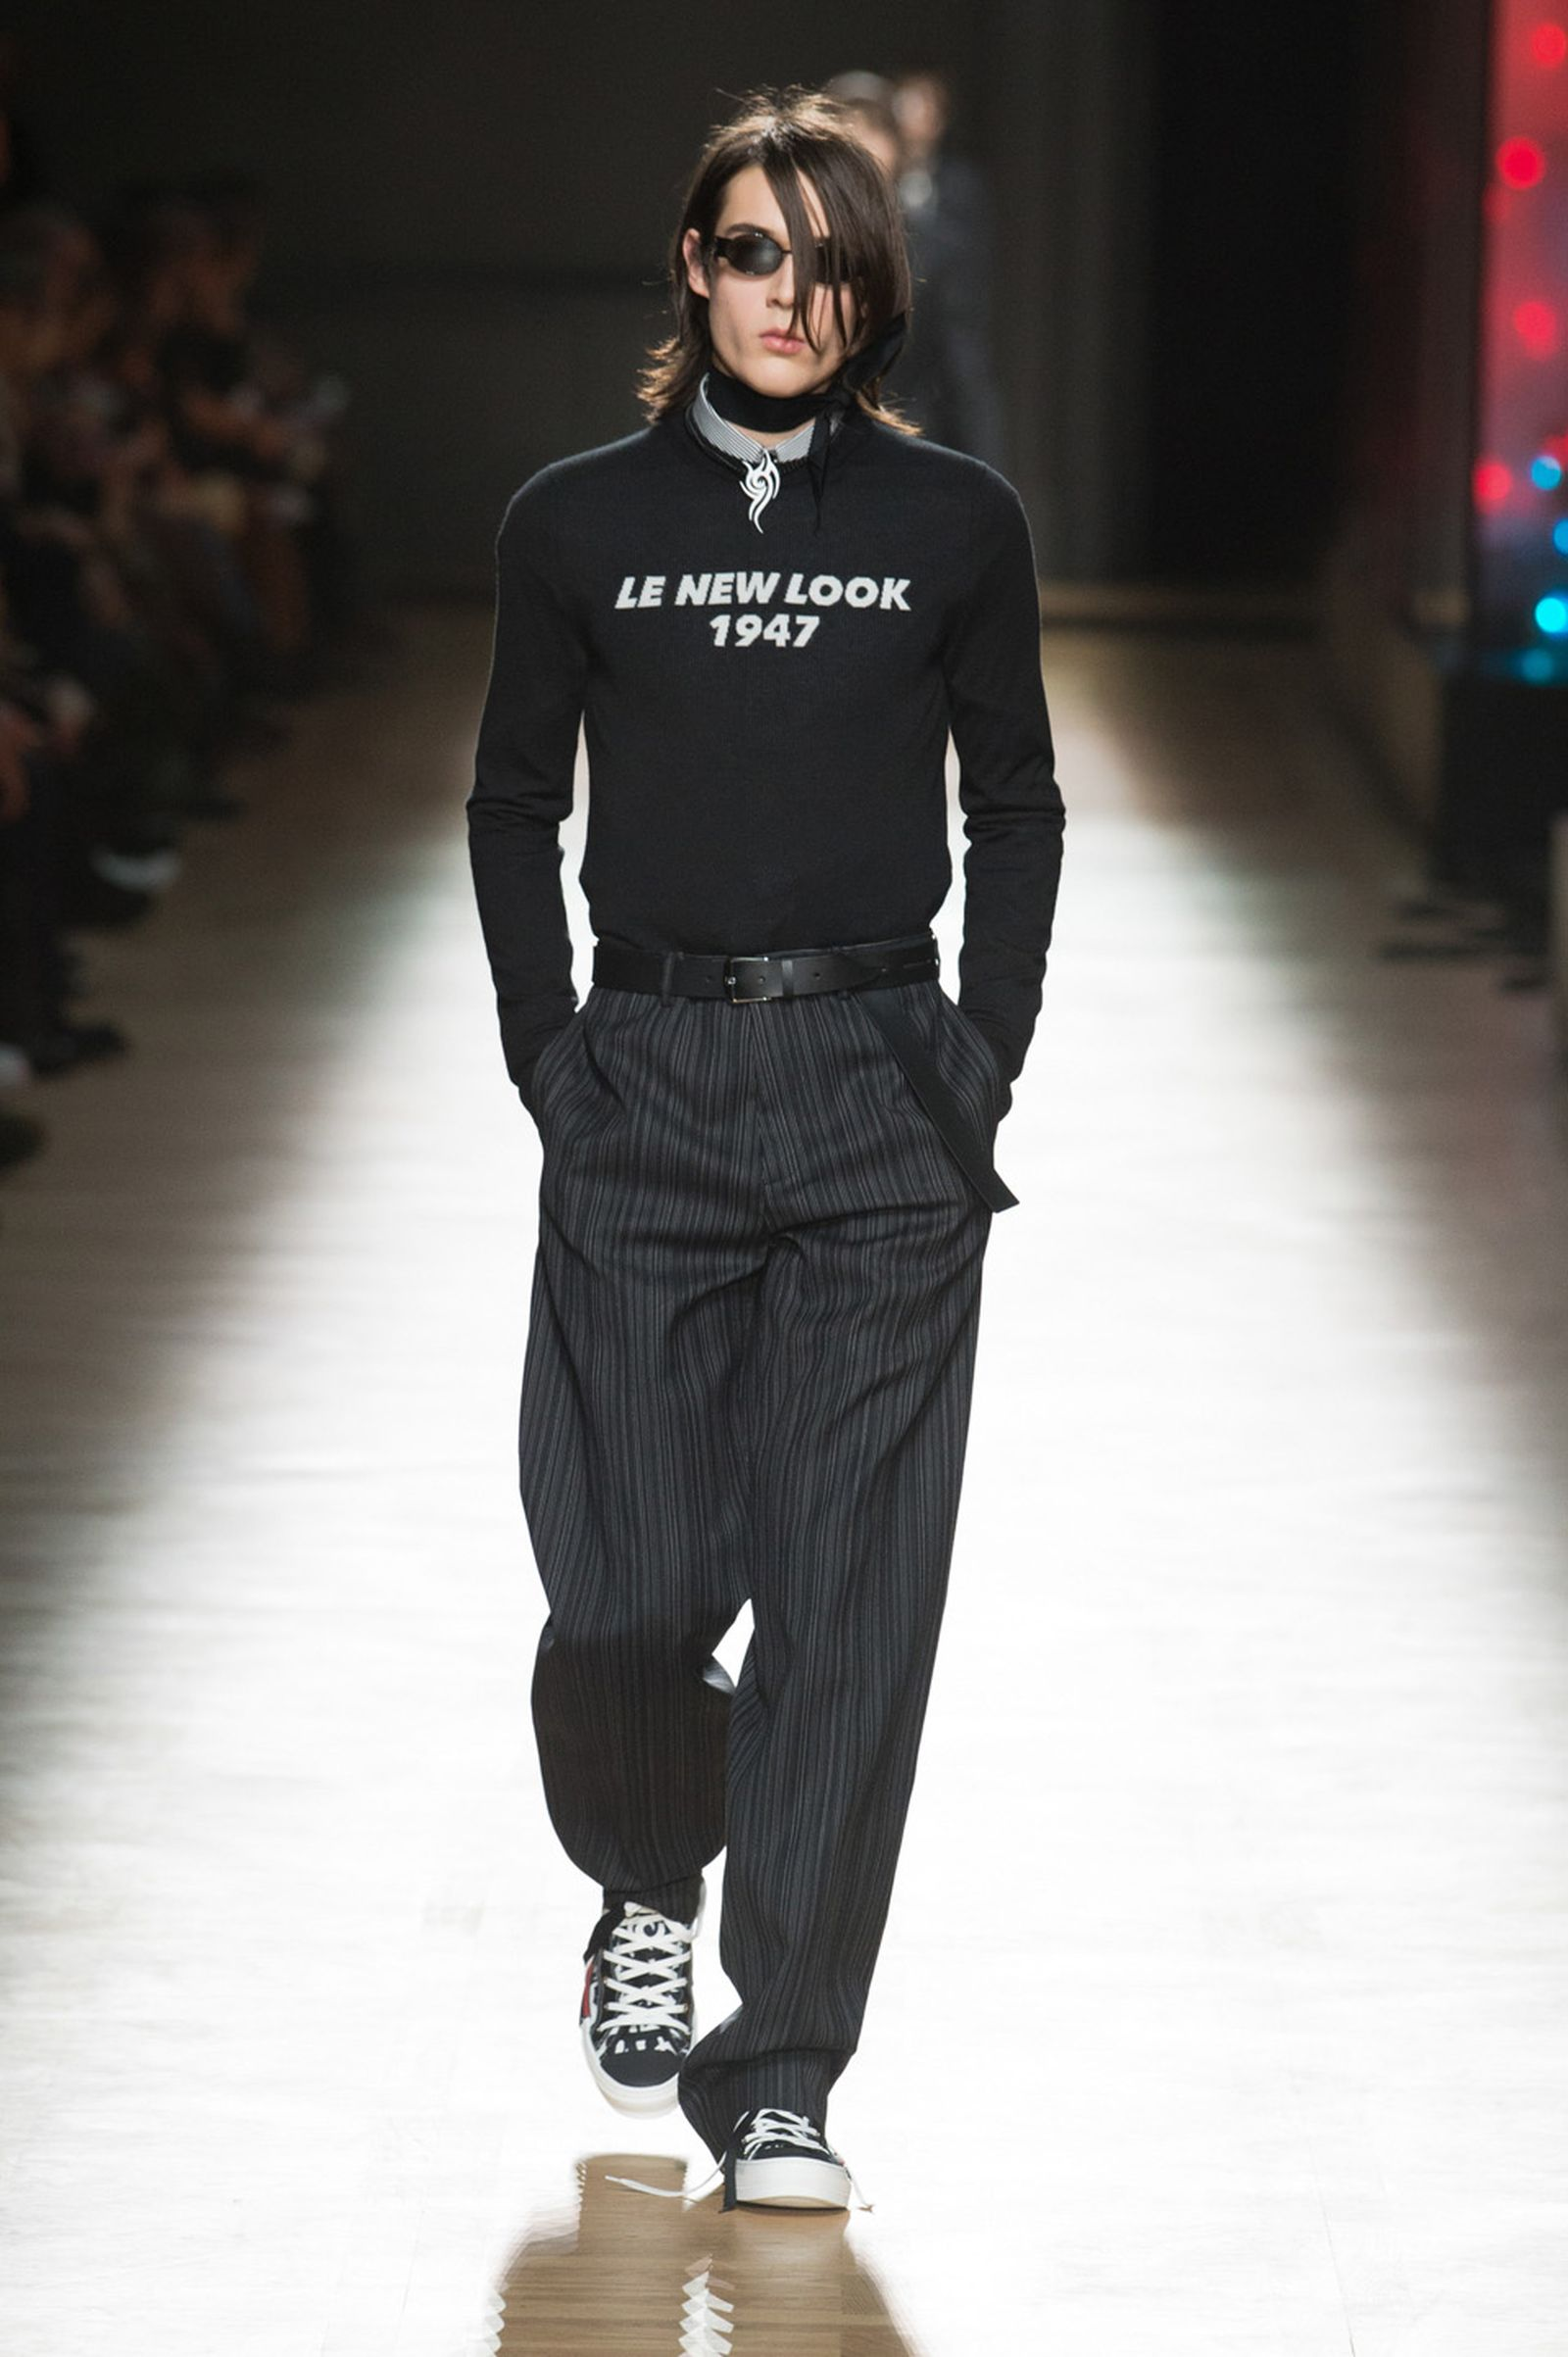 DIOR HOMME WINTER 18 19 BY PATRICE STABLE look46 Fall/WInter 2018 runway